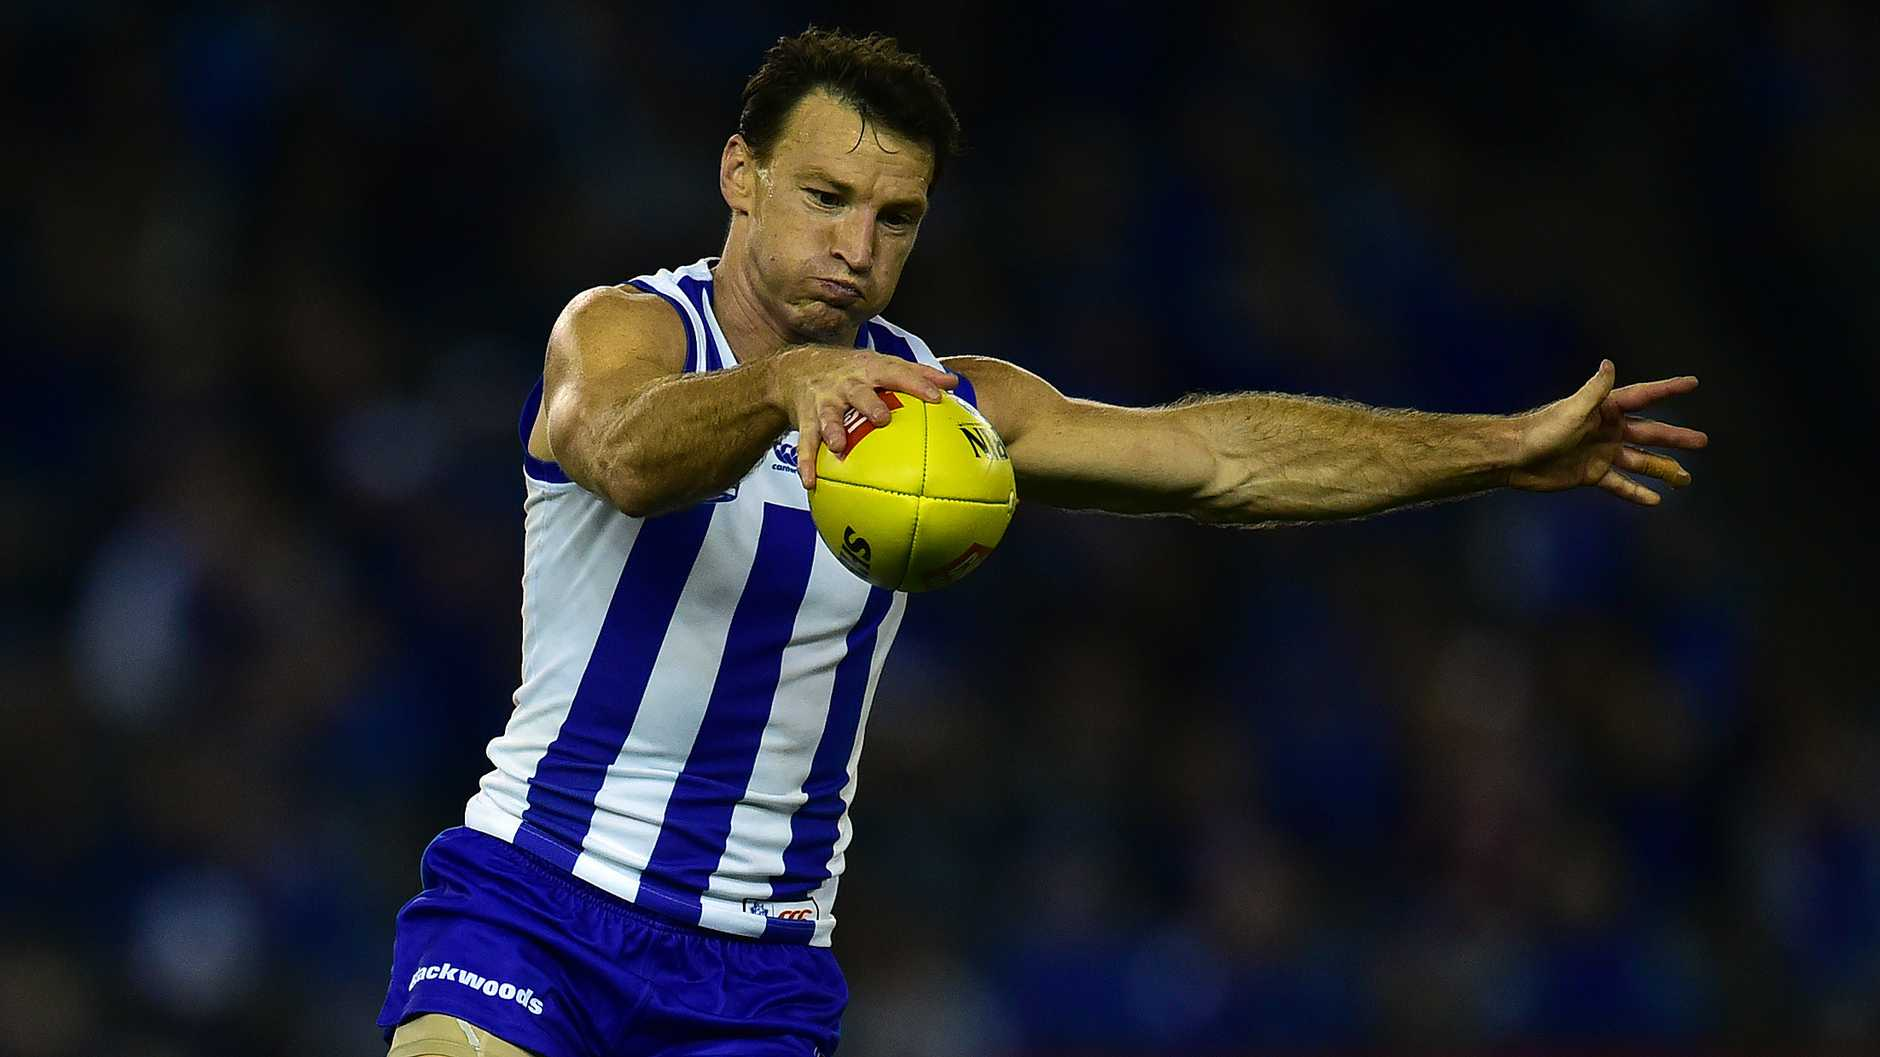 North Melbourne champion Brent Harvey will tonight play his 400th game ... and there should be plenty more to come.